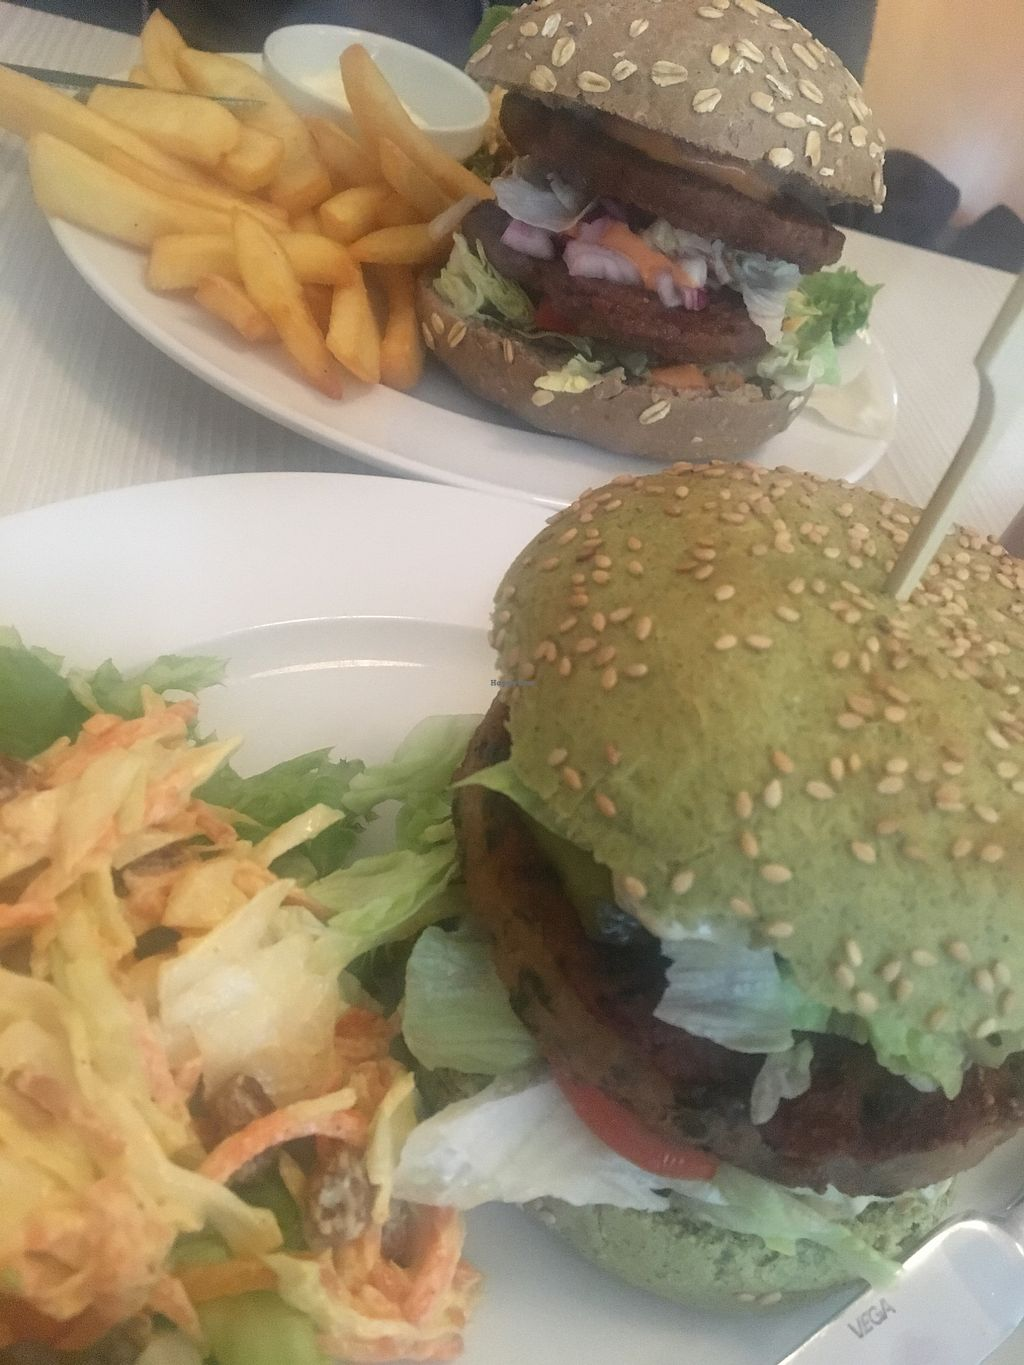 """Photo of Daantje  by <a href=""""/members/profile/TamaraTaGo"""">TamaraTaGo</a> <br/>The Dutch Weed burger and a double burger <br/> December 3, 2017  - <a href='/contact/abuse/image/58152/331760'>Report</a>"""